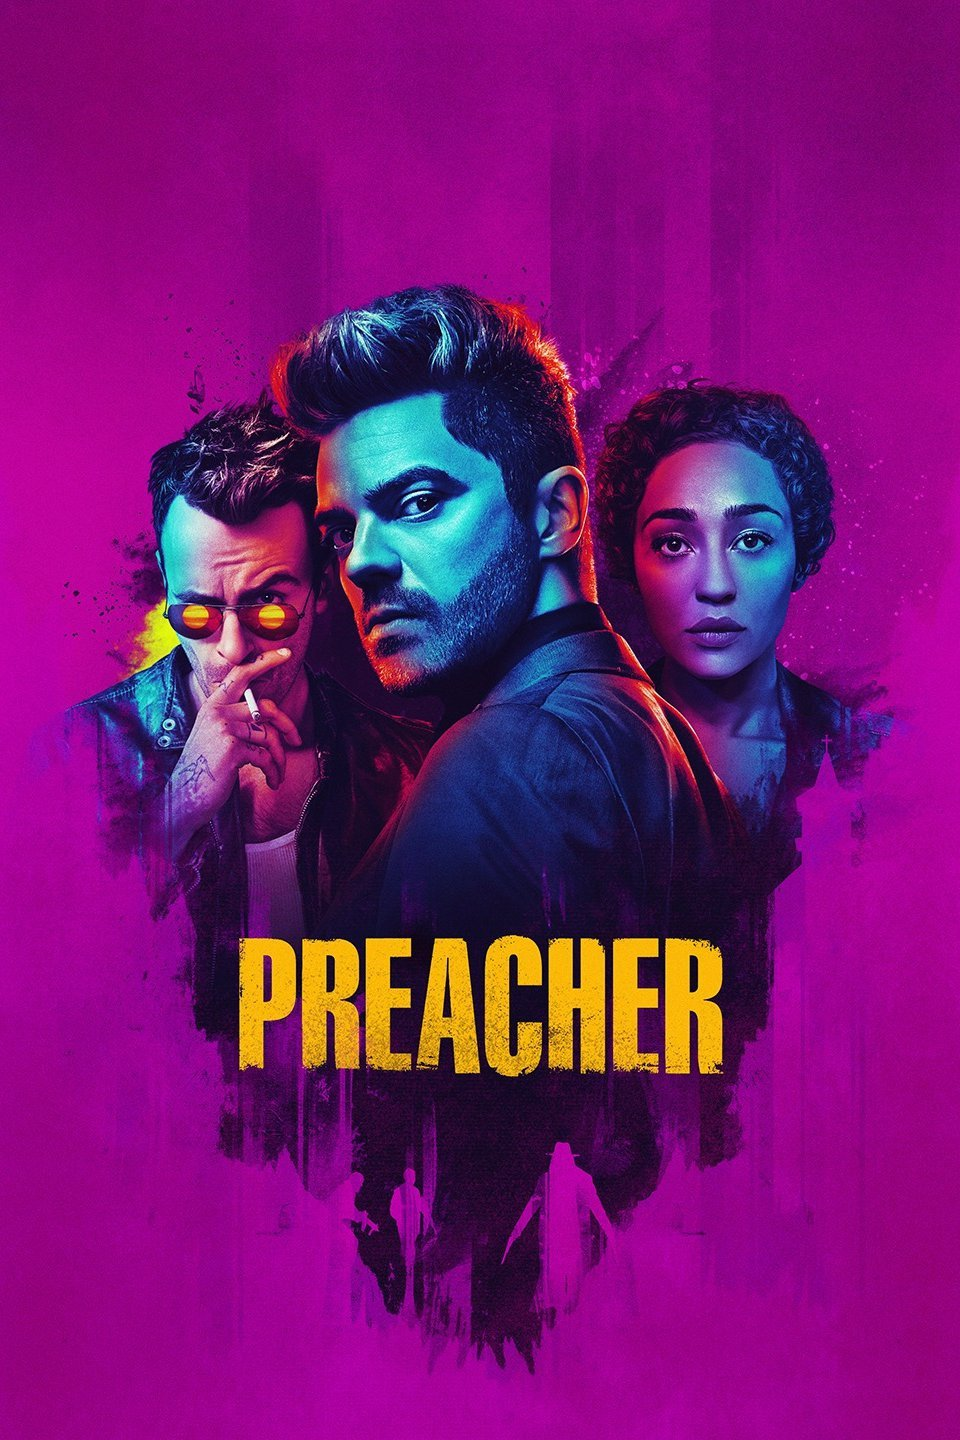 Preacher Tv Series Download Season 2 Episode 1 HDTV Micromkv